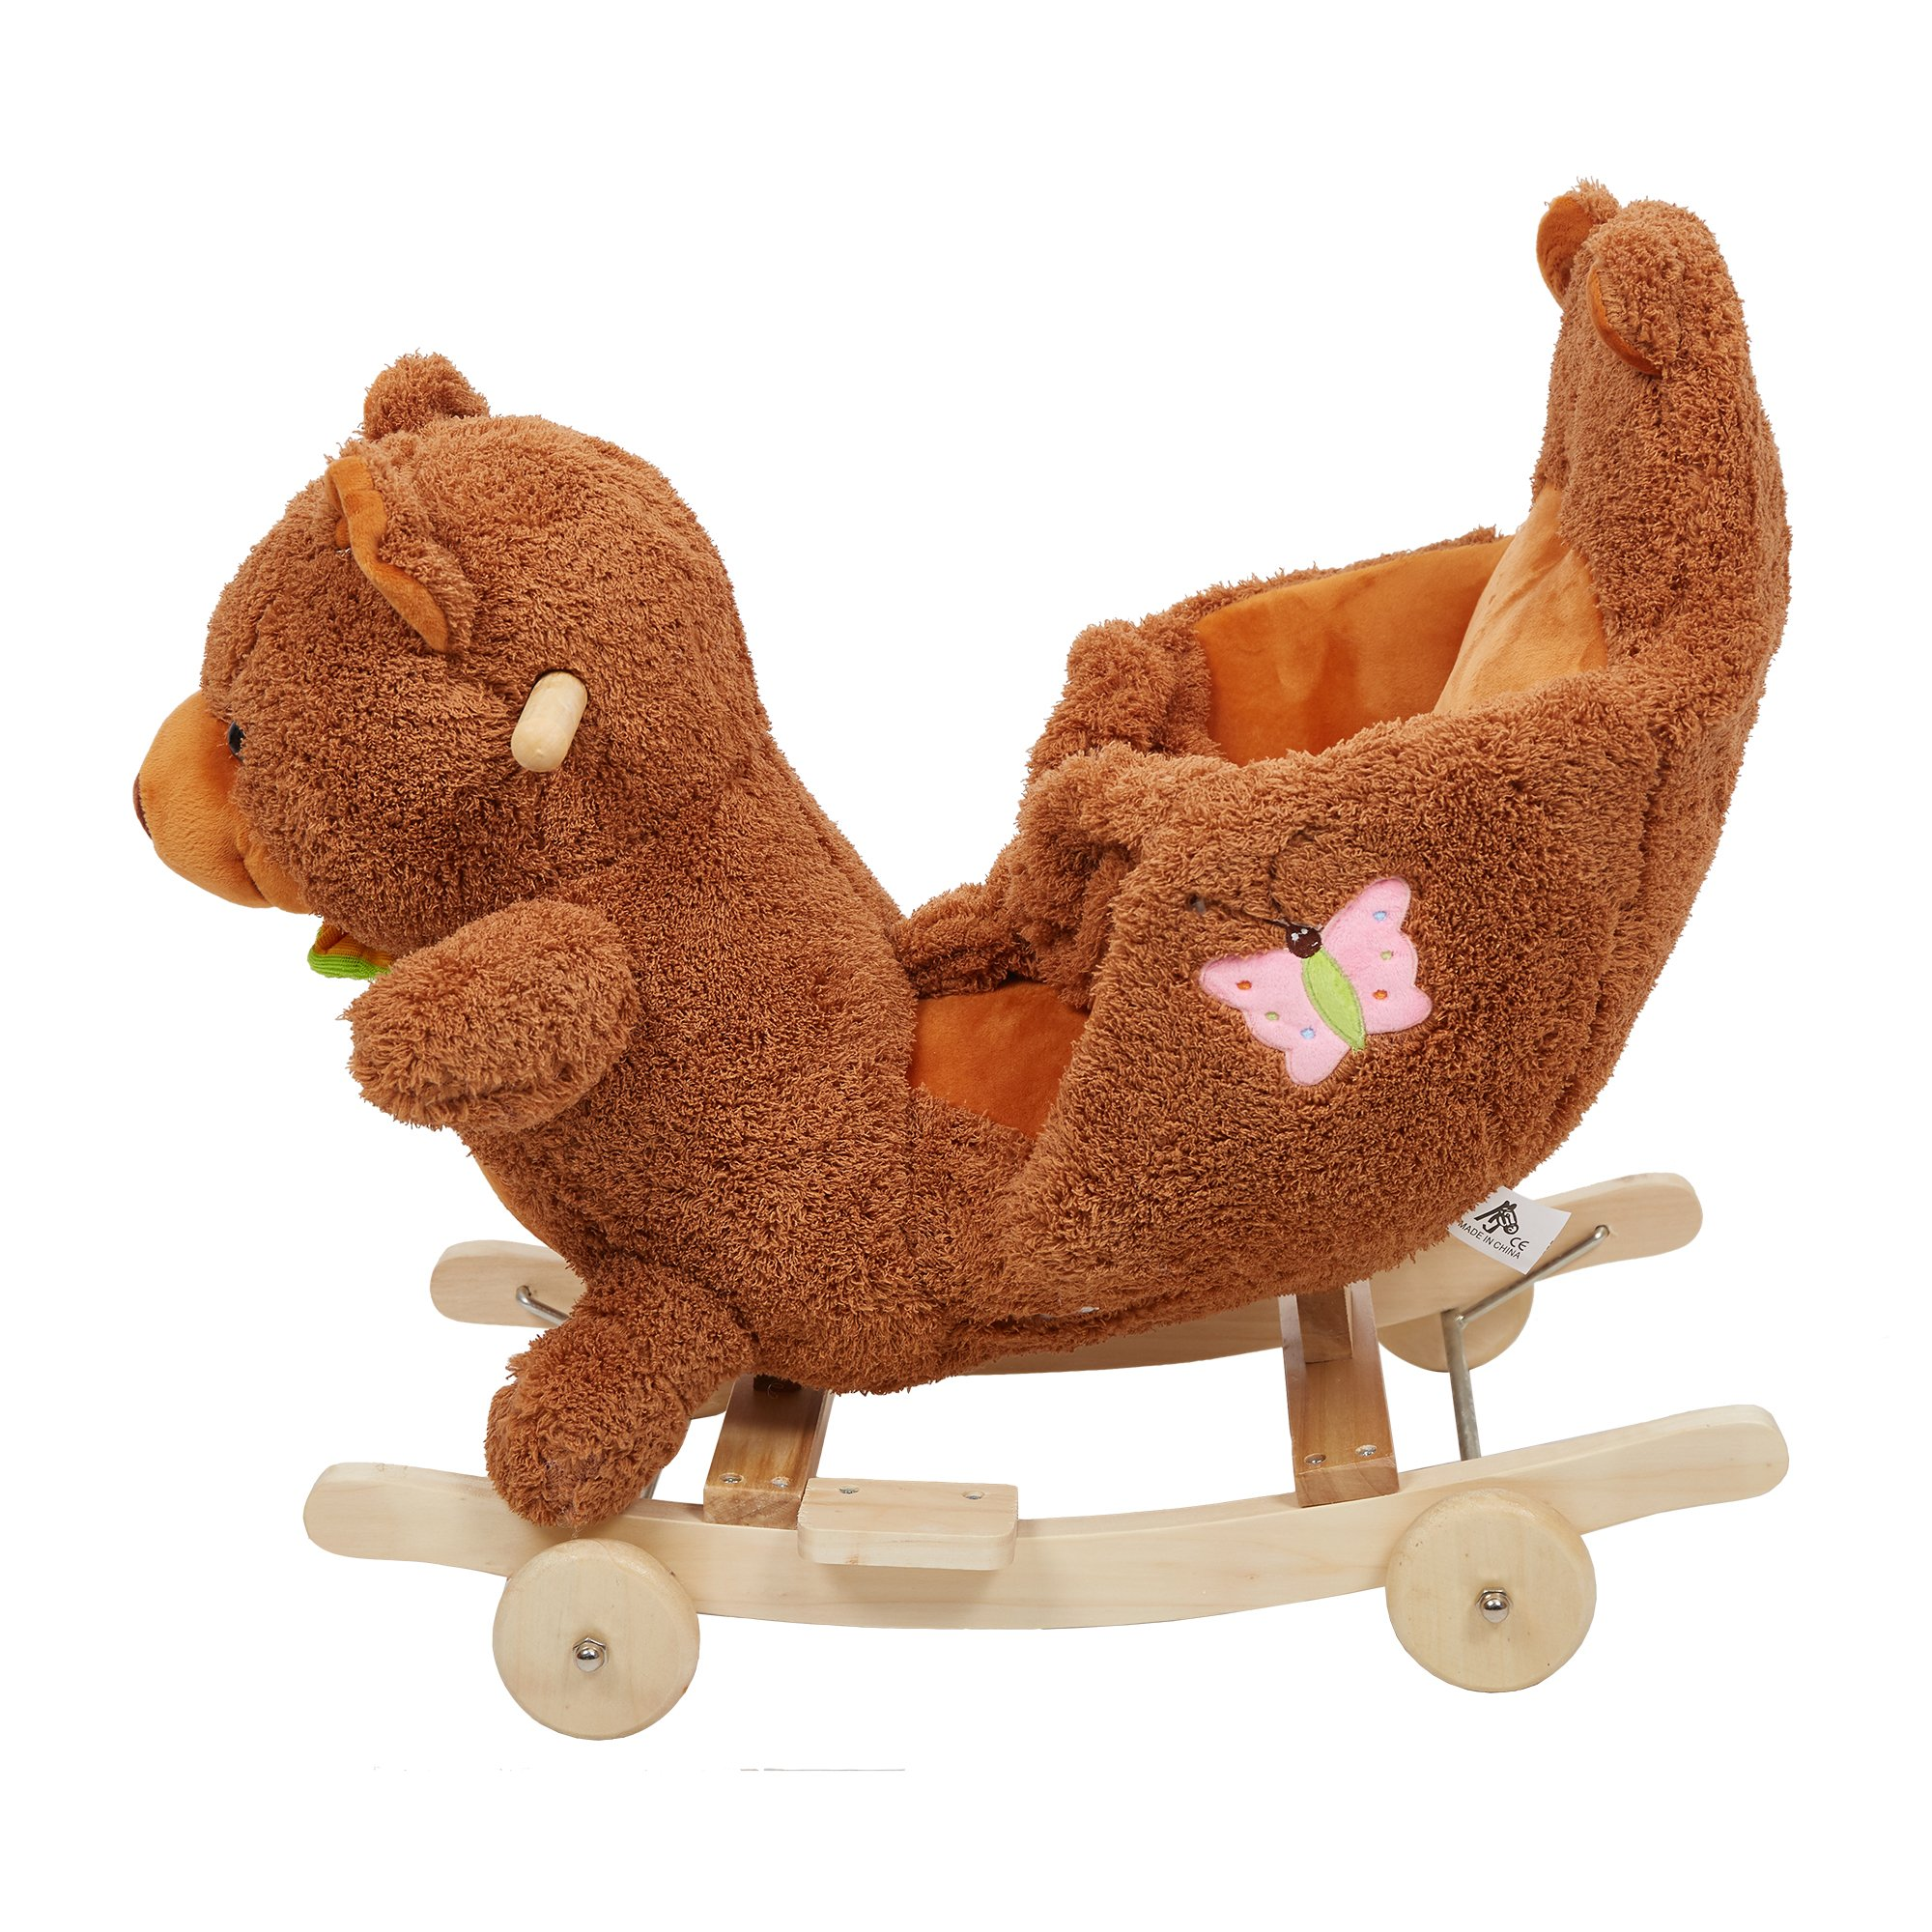 Lucky Tree Rocking Horse Wooden Riding Toys Plush Brown Bear Ride on Toy with Wheels for kids 18 Months-4 Years,Bear by Lucky Tree (Image #3)